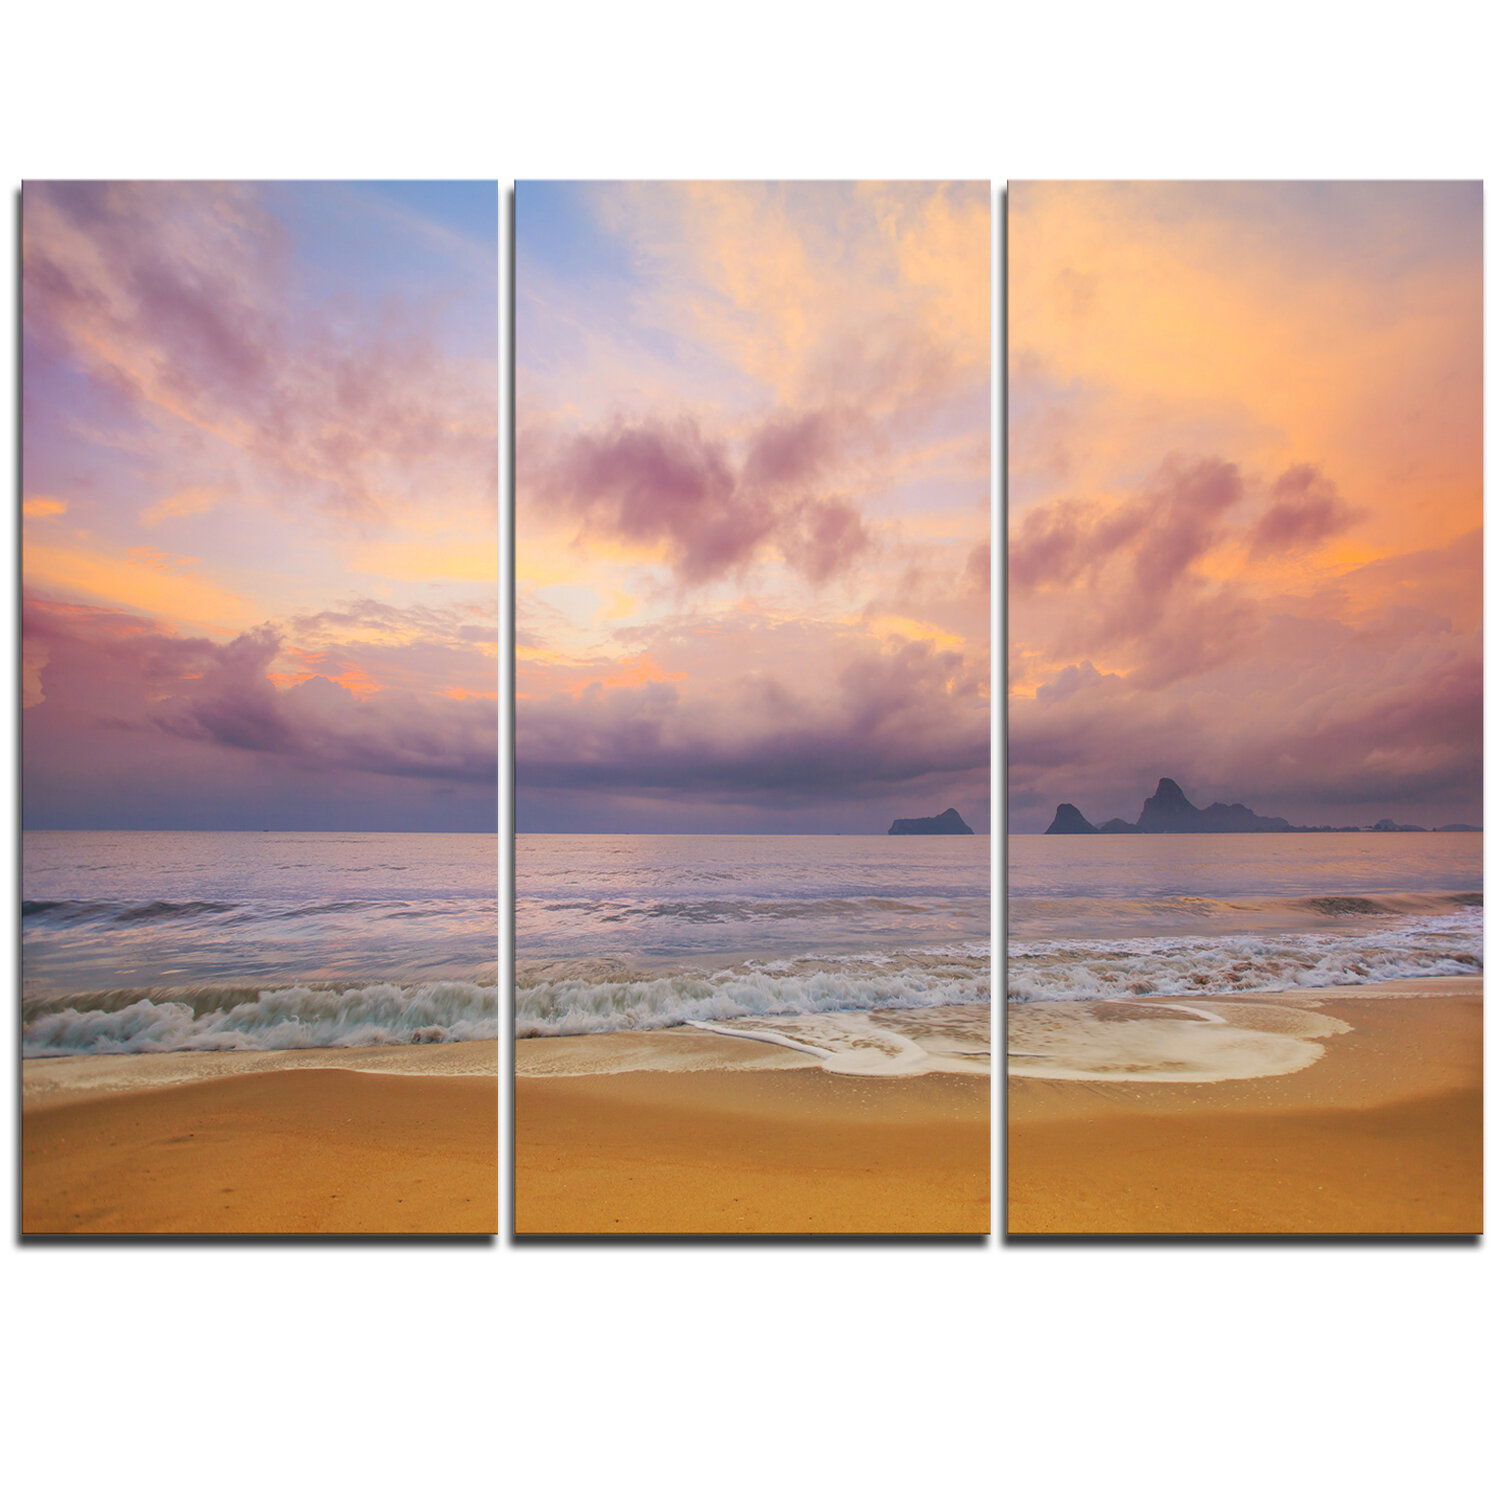 Designart Bright Morning Over The Sea 3 Piece Graphic Art On Wrapped Canvas Set Wayfair